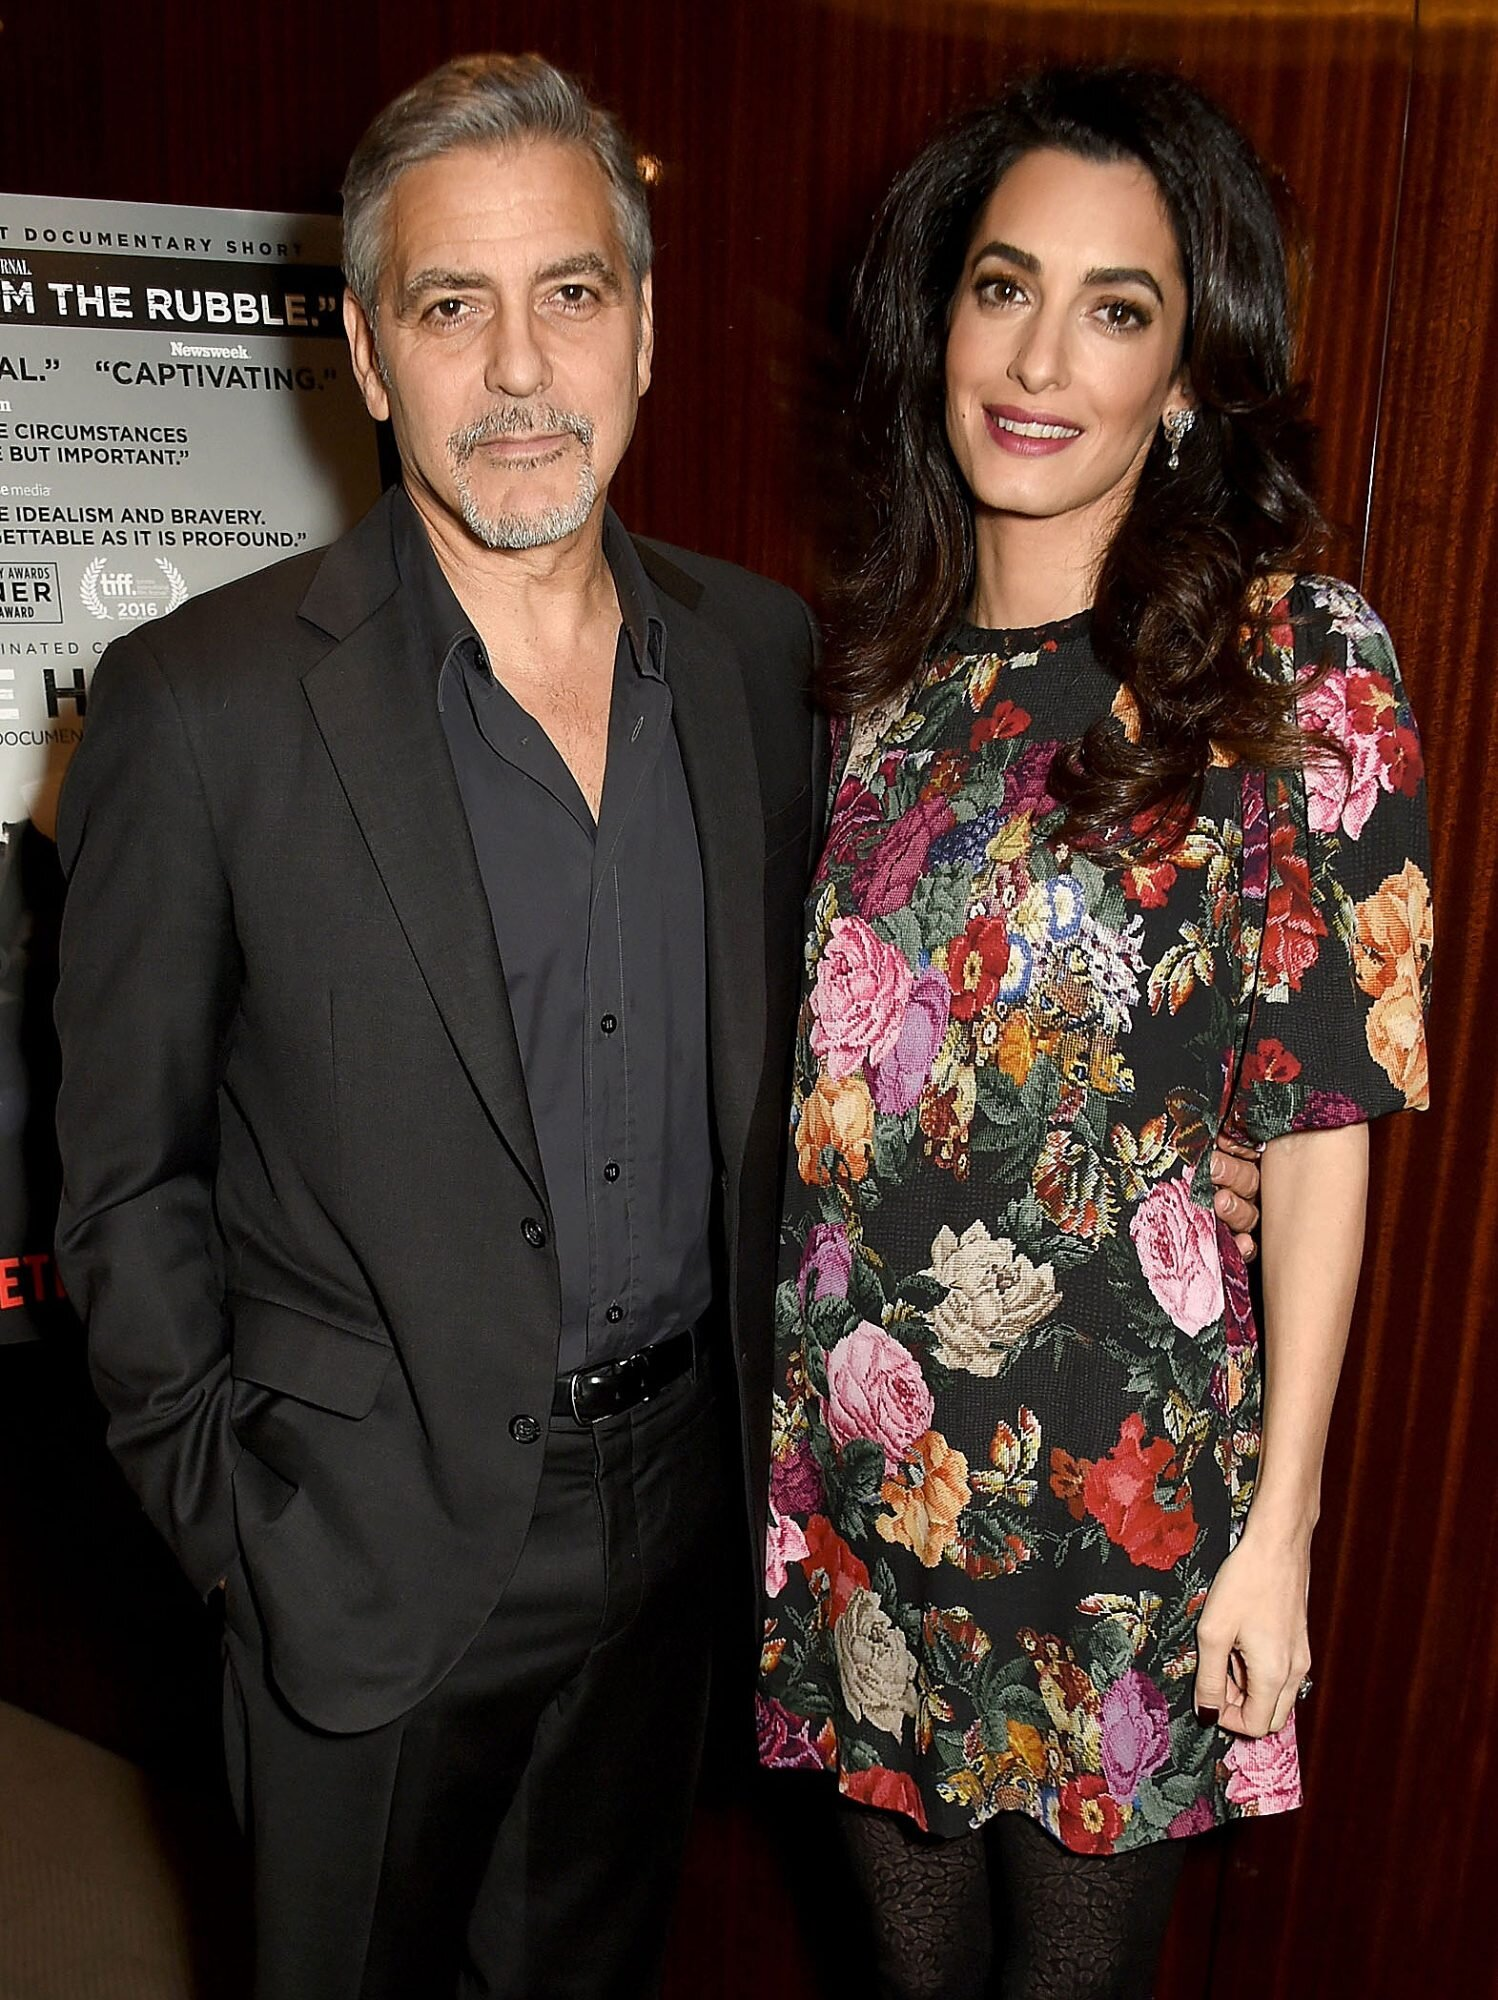 Amal and George Clooney Donate $100,000 to Lebanese Charities in the Wake of the Beirut Explosion Image?url=https%3A%2F%2Fstatic.onecms.io%2Fwp-content%2Fuploads%2Fsites%2F20%2F2017%2F06%2Famal-clooney12-2000